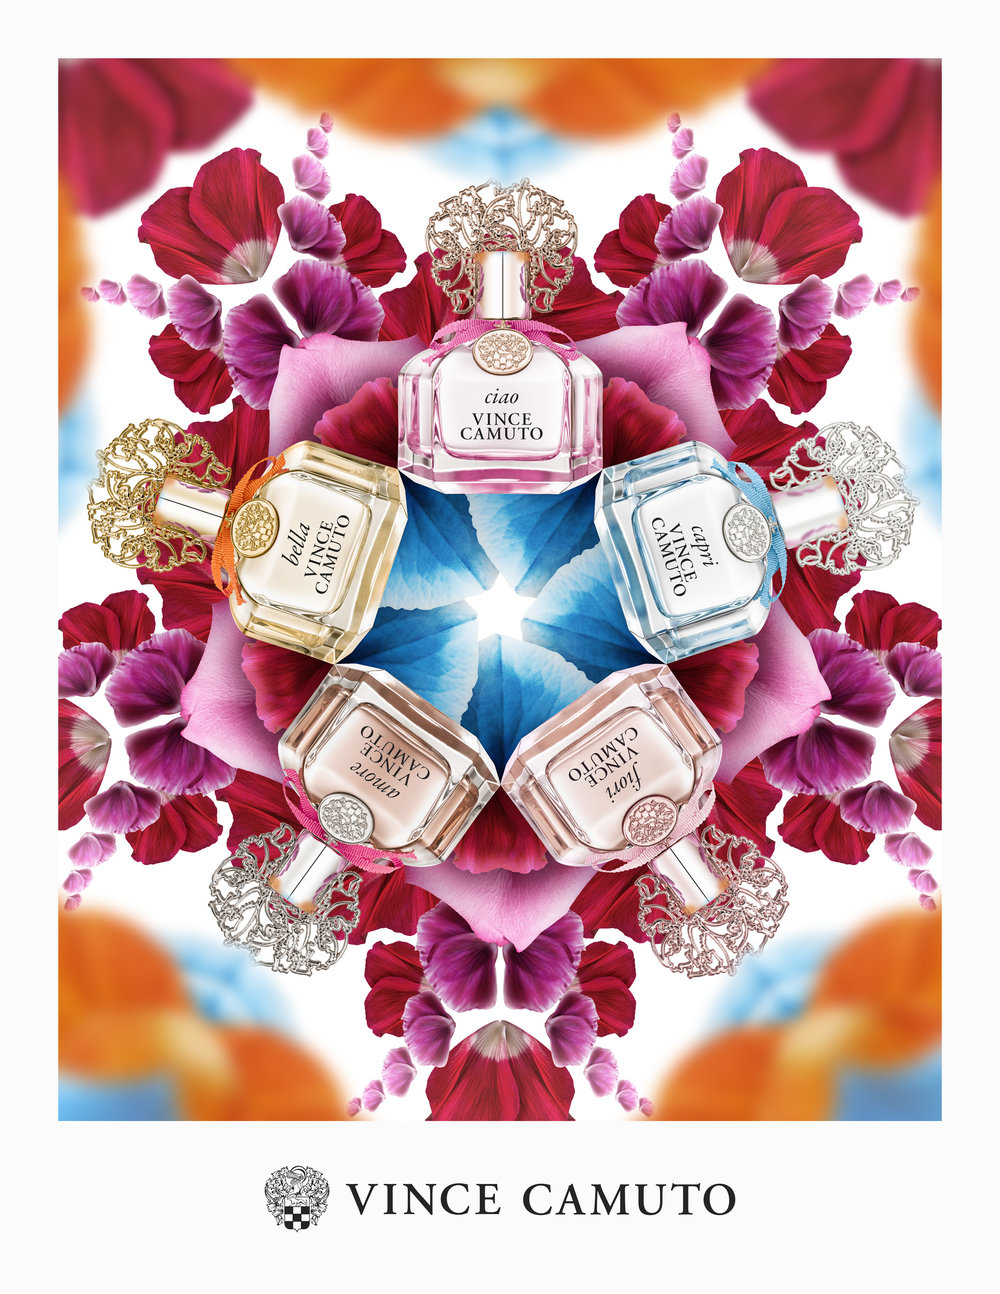 Vince-Camuto-Garden-Series-Fragrance-Ad-by-Timothy-Hogan_5UP.jpg